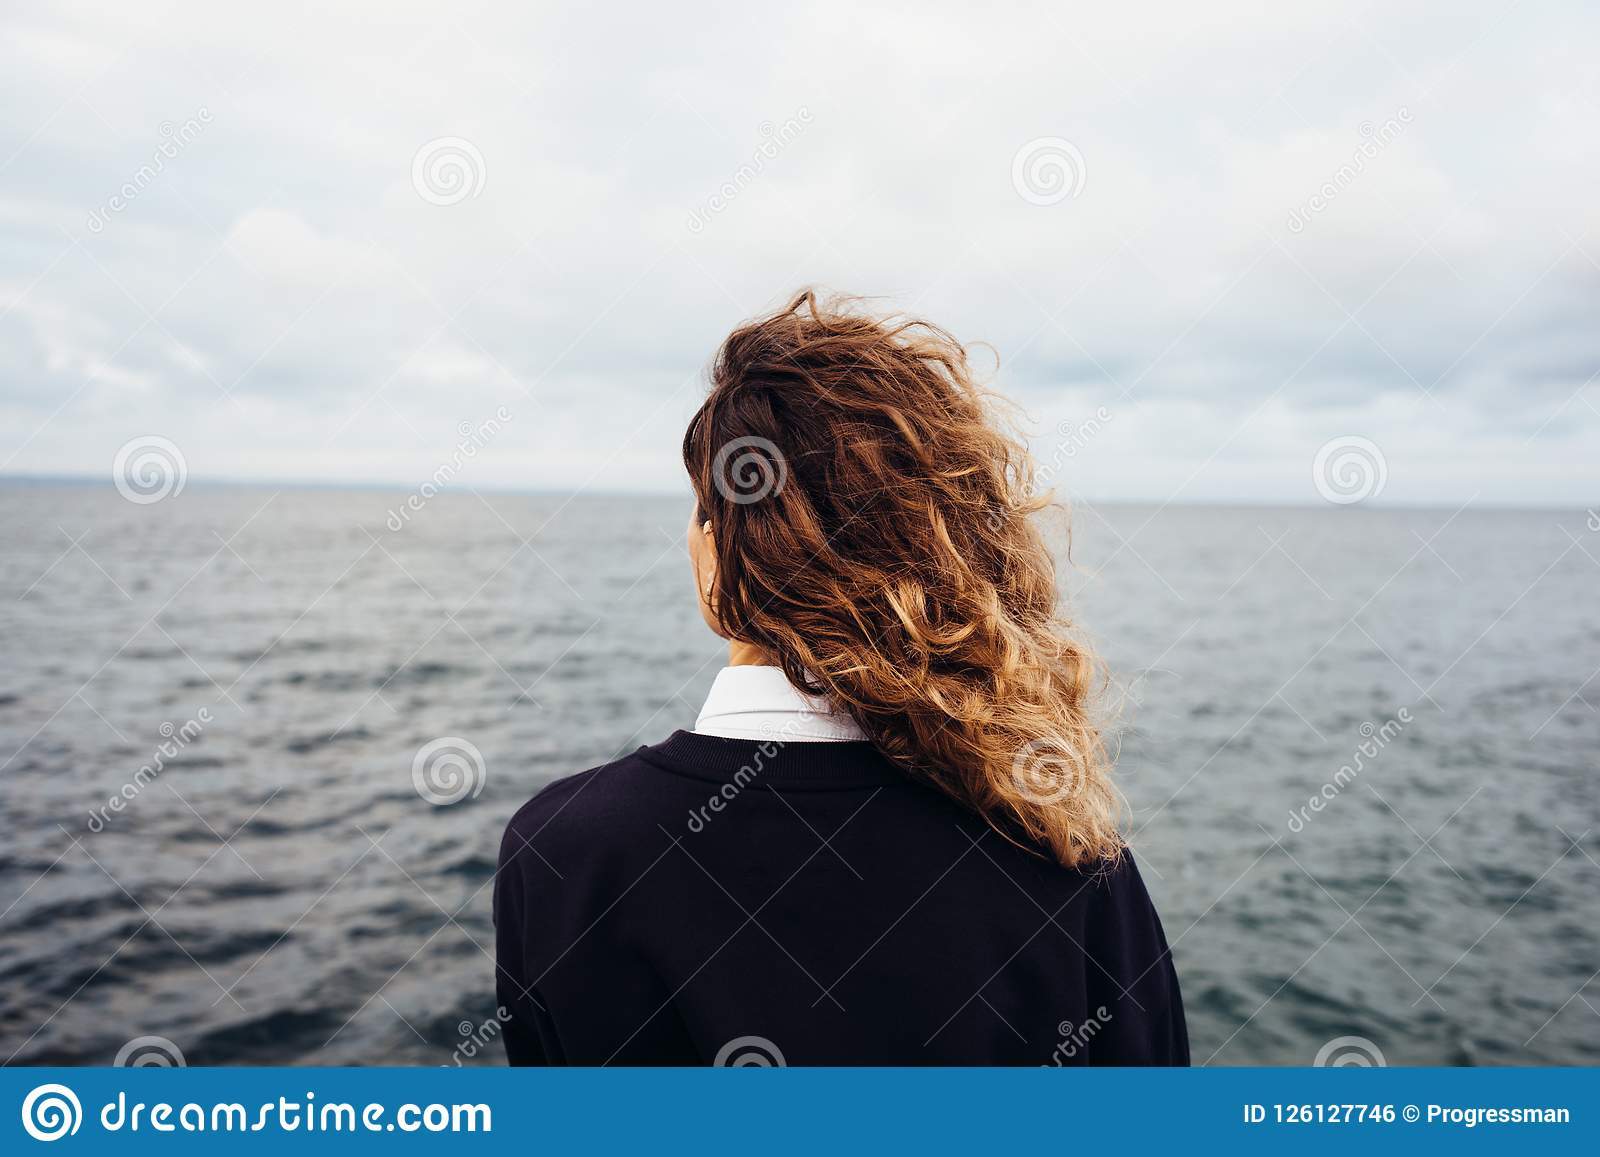 Rear view of young woman looking at overcast sky and gray sea